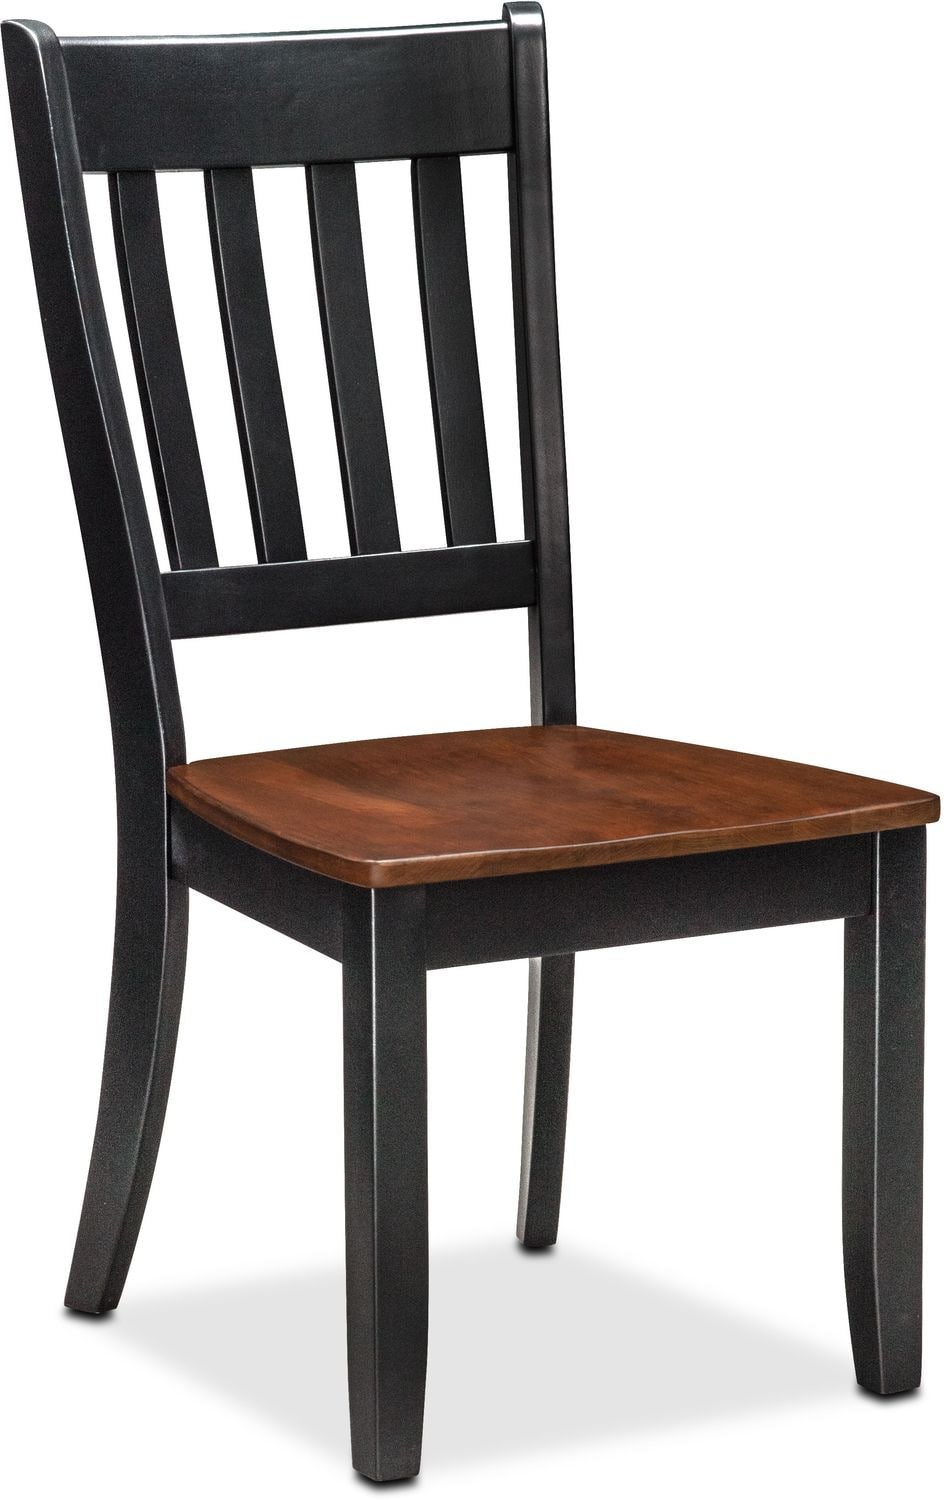 Nantucket Slat-Back Chair - Black and Cherry